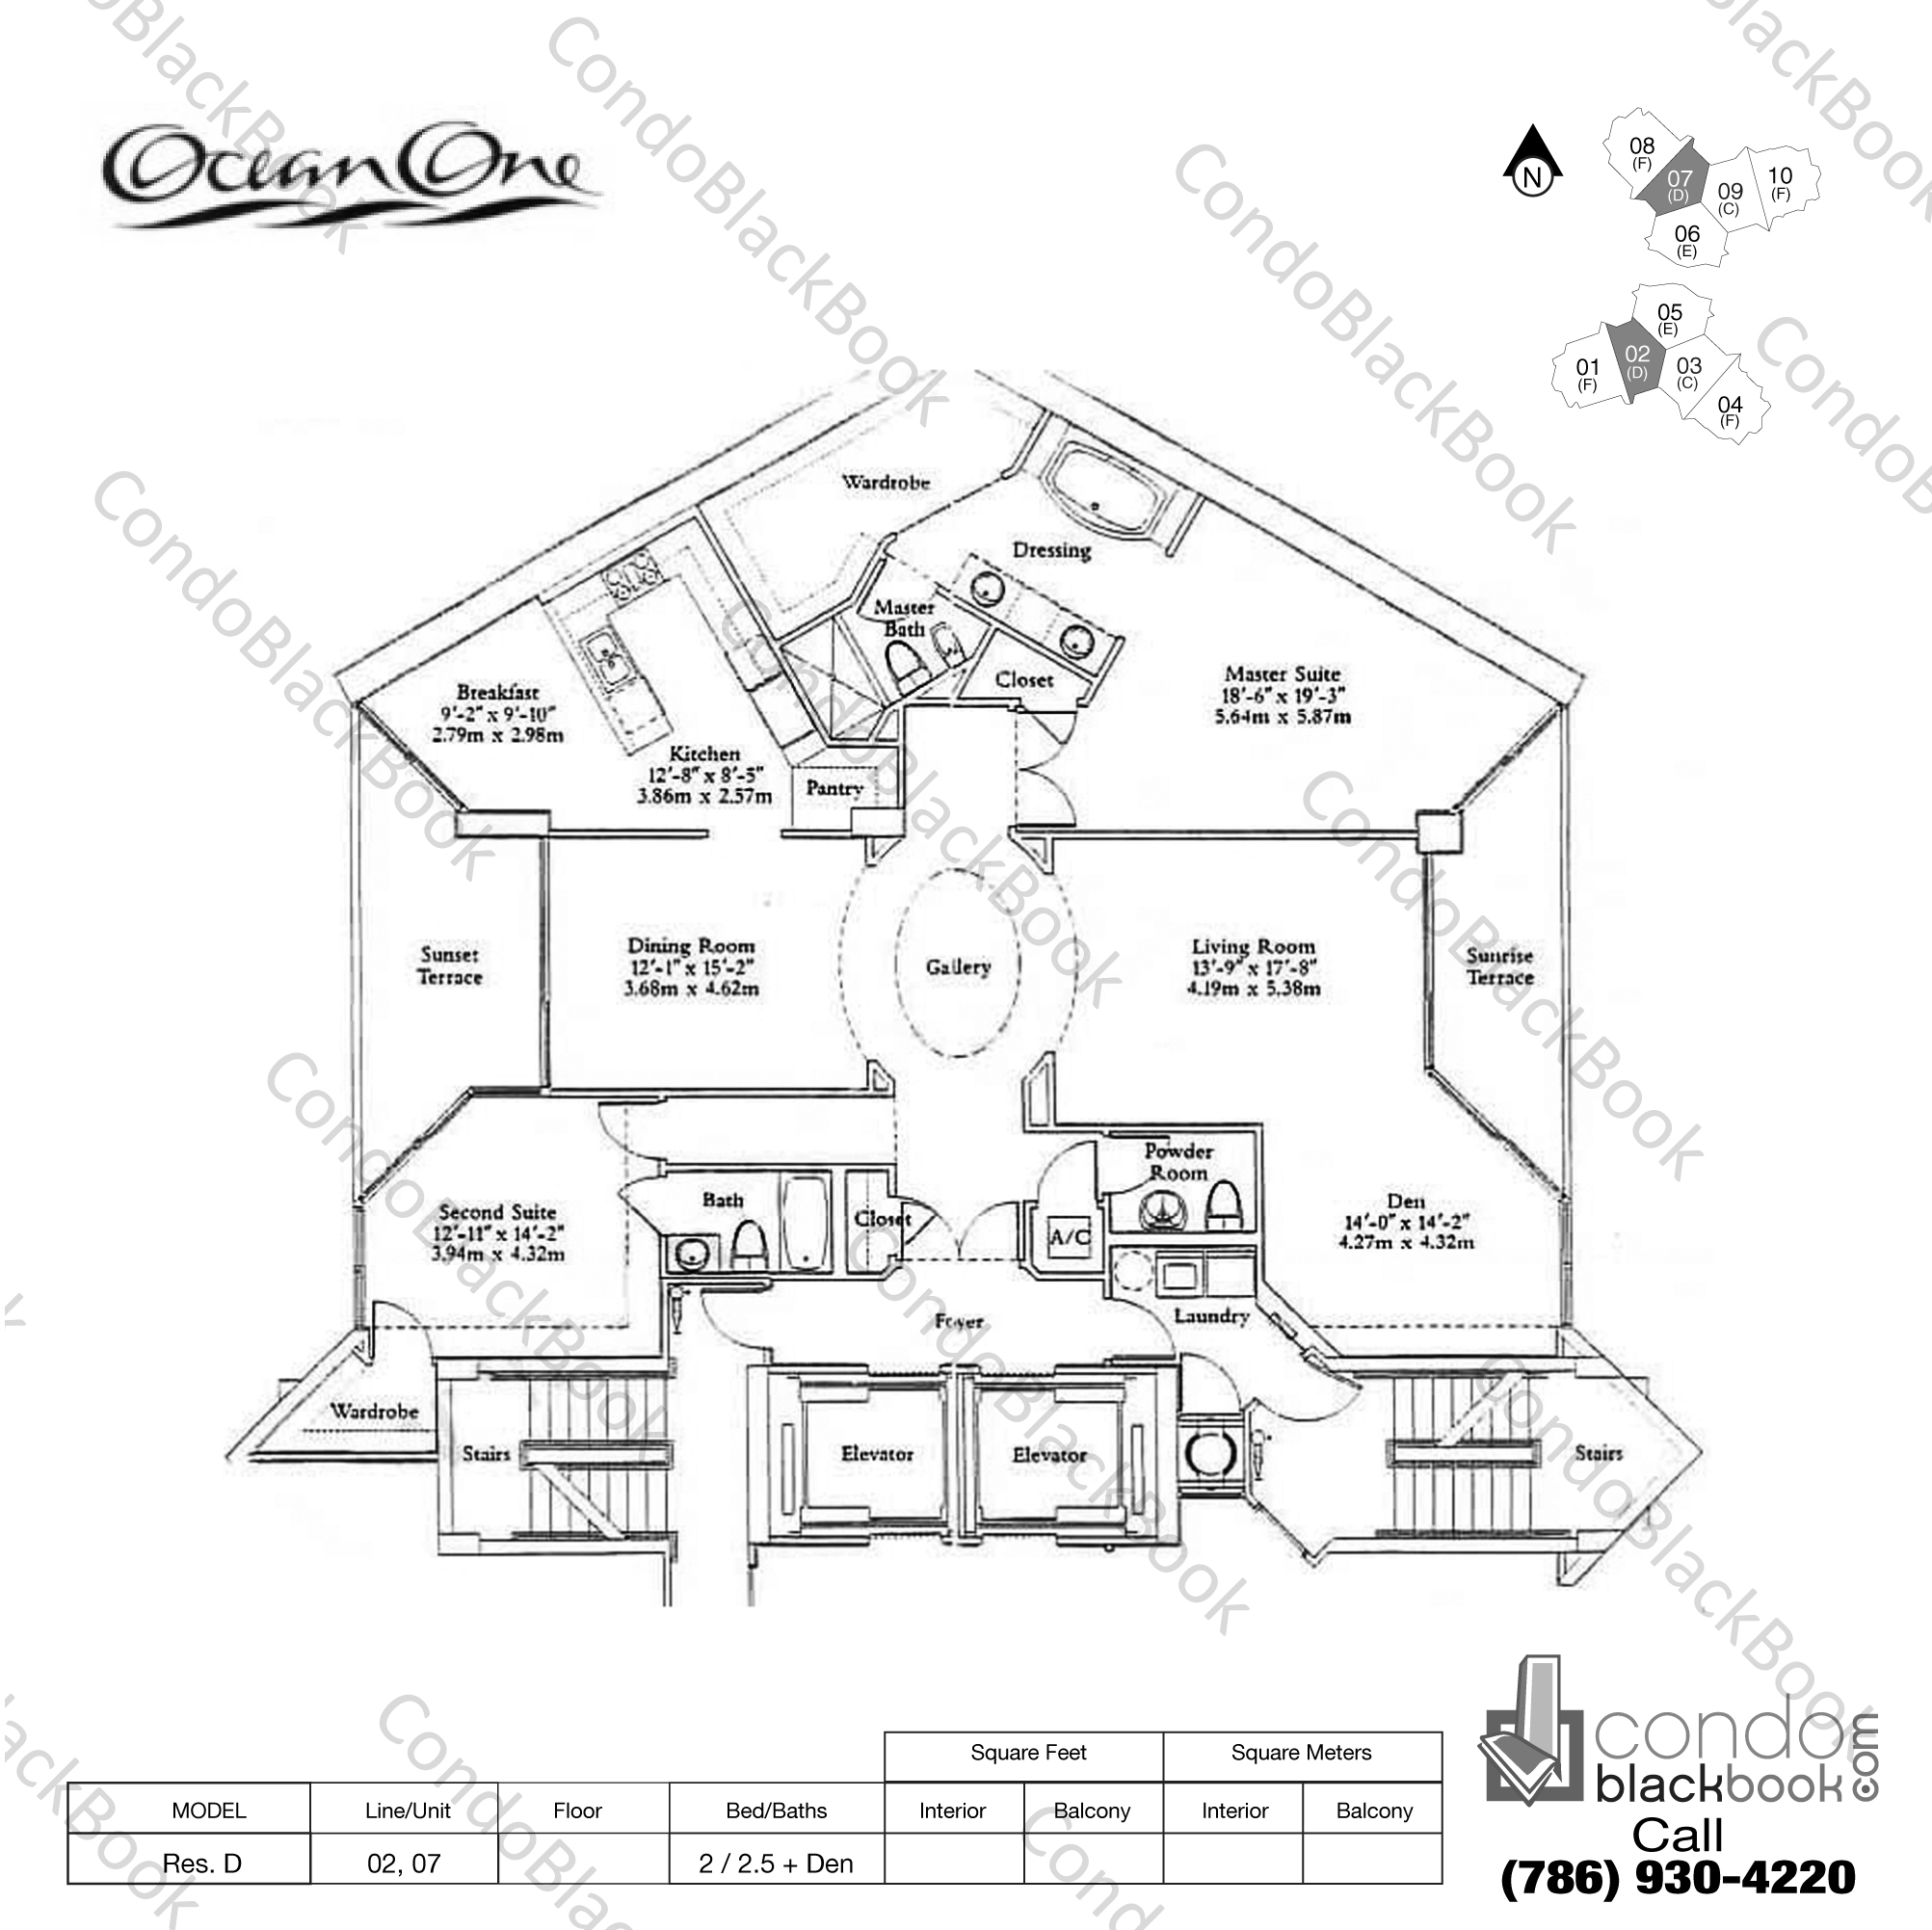 Floor plan for Ocean One Sunny Isles Beach, model Residence D, line 02, 07, 2 / 2.5 + Den bedrooms